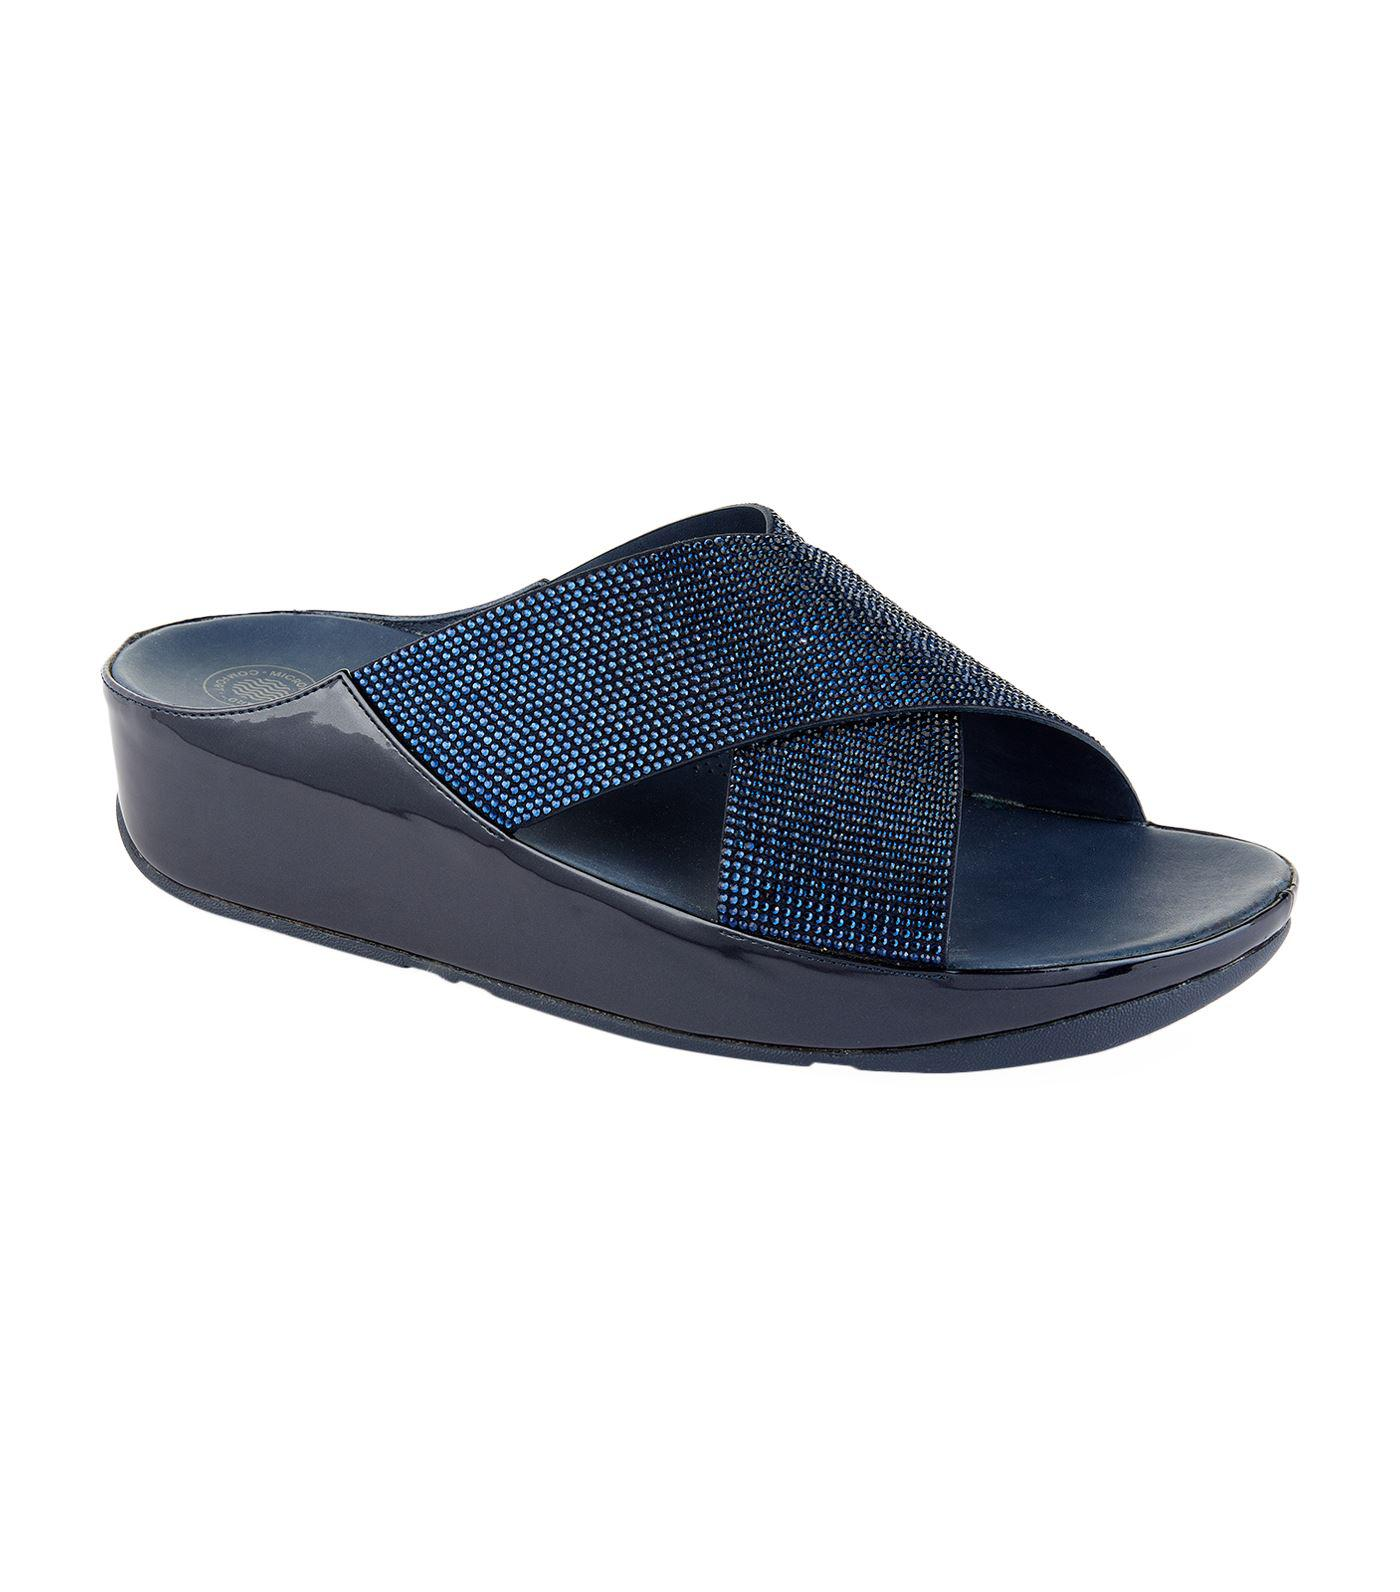 710b33d5277536 Lyst - Fitflop Crystall Slide Sandals in Blue